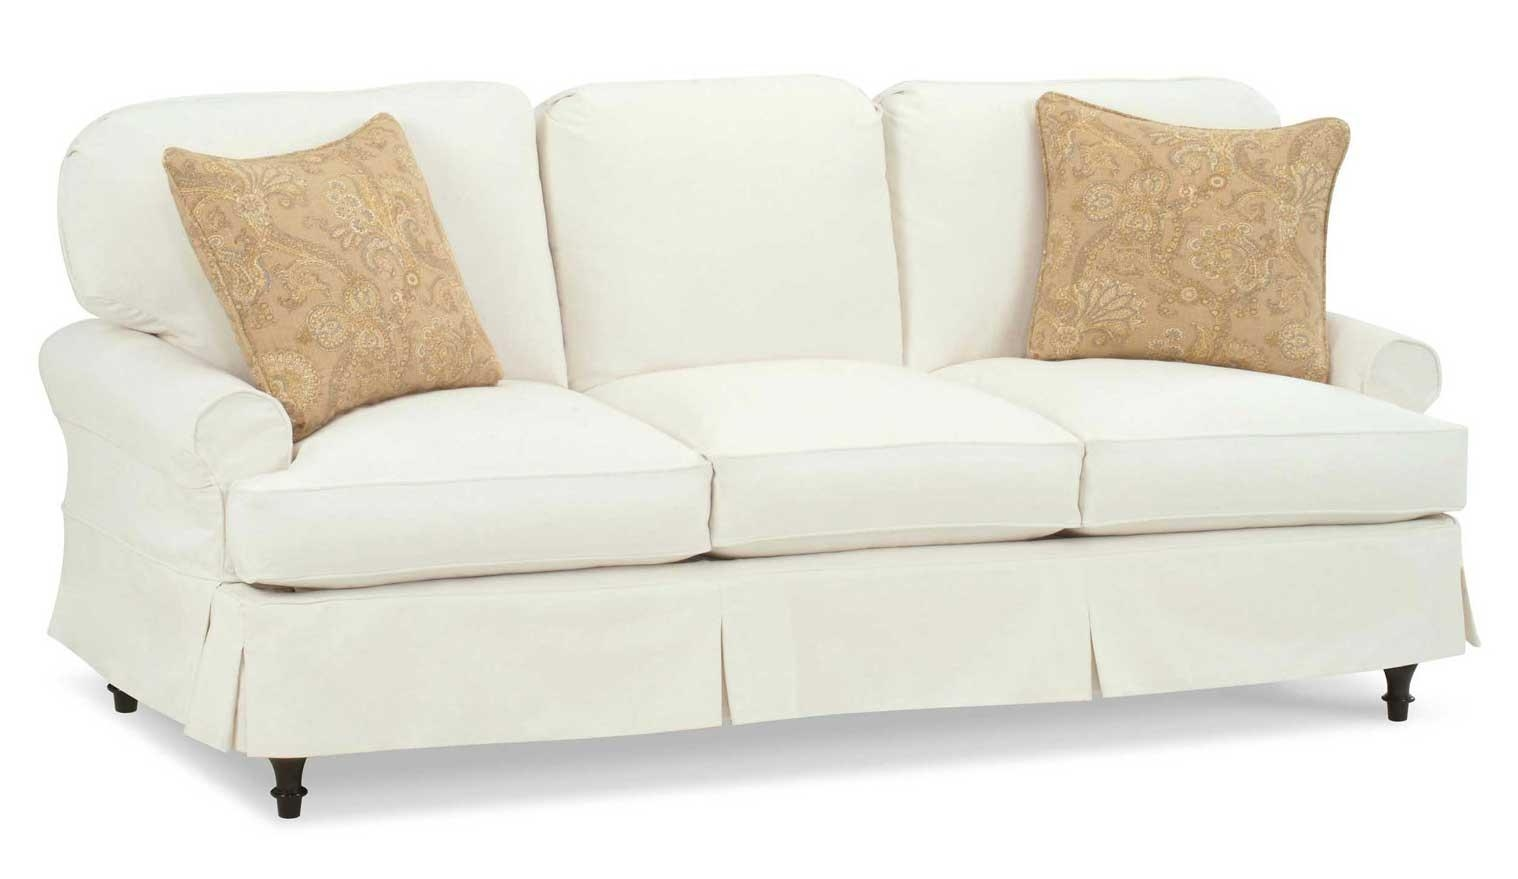 Bench Style Sofa | Sofa Gallery | Kengire Intended For Bench Style Sofas (Image 4 of 20)